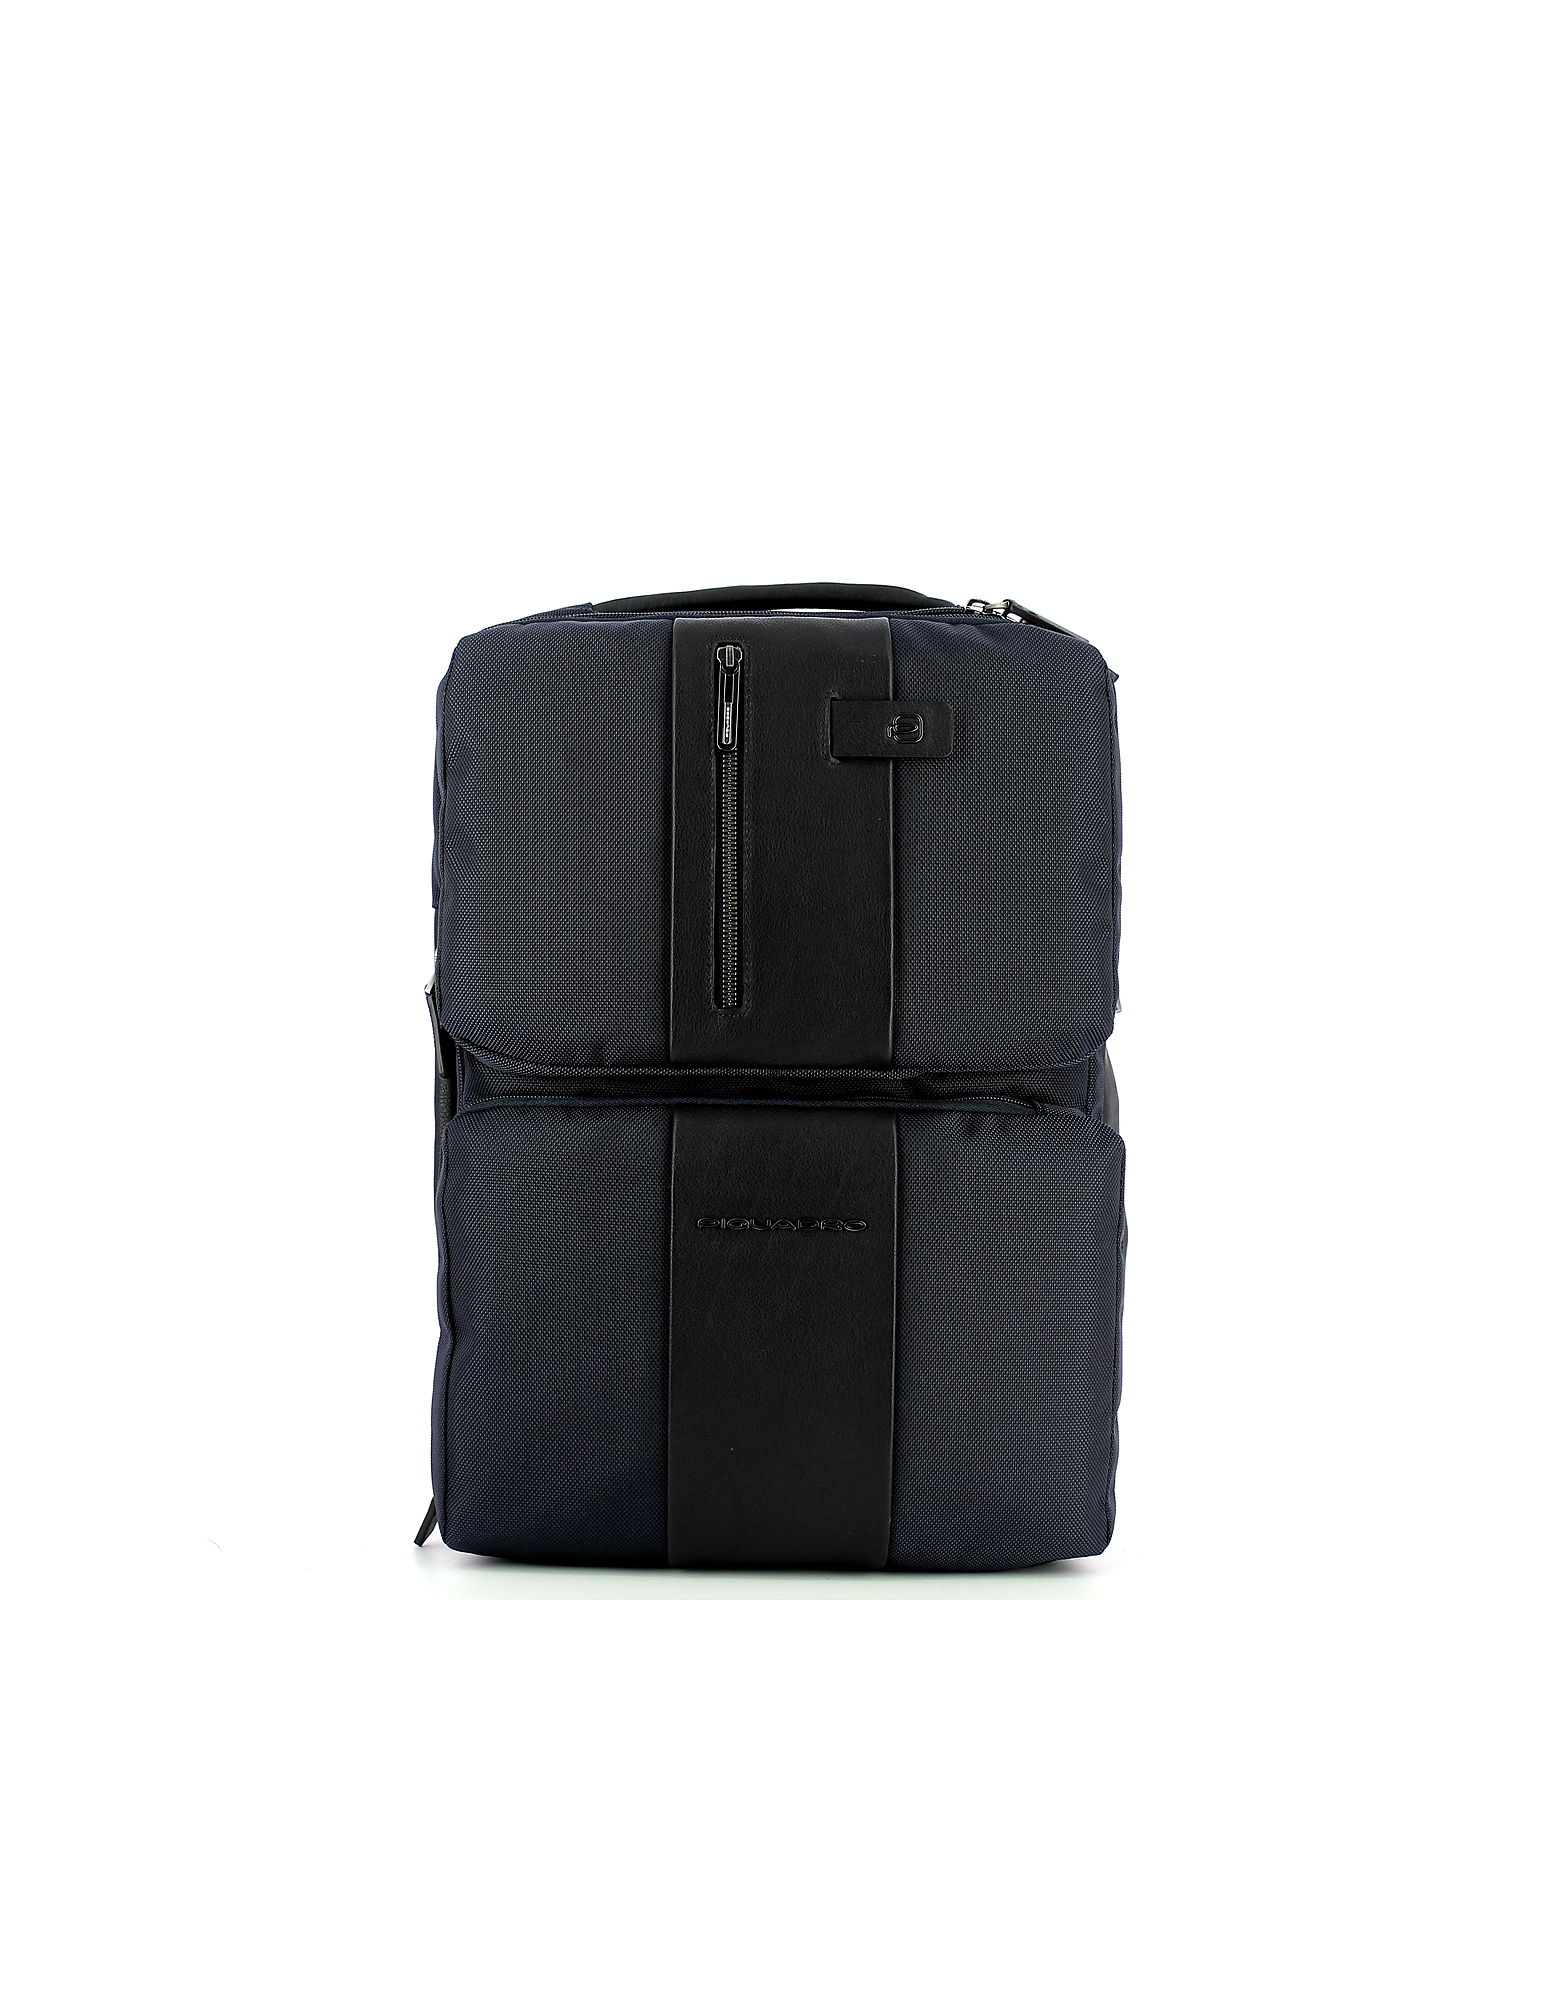 Piquadro Designer Men's Bags, Men's Blue Backpack